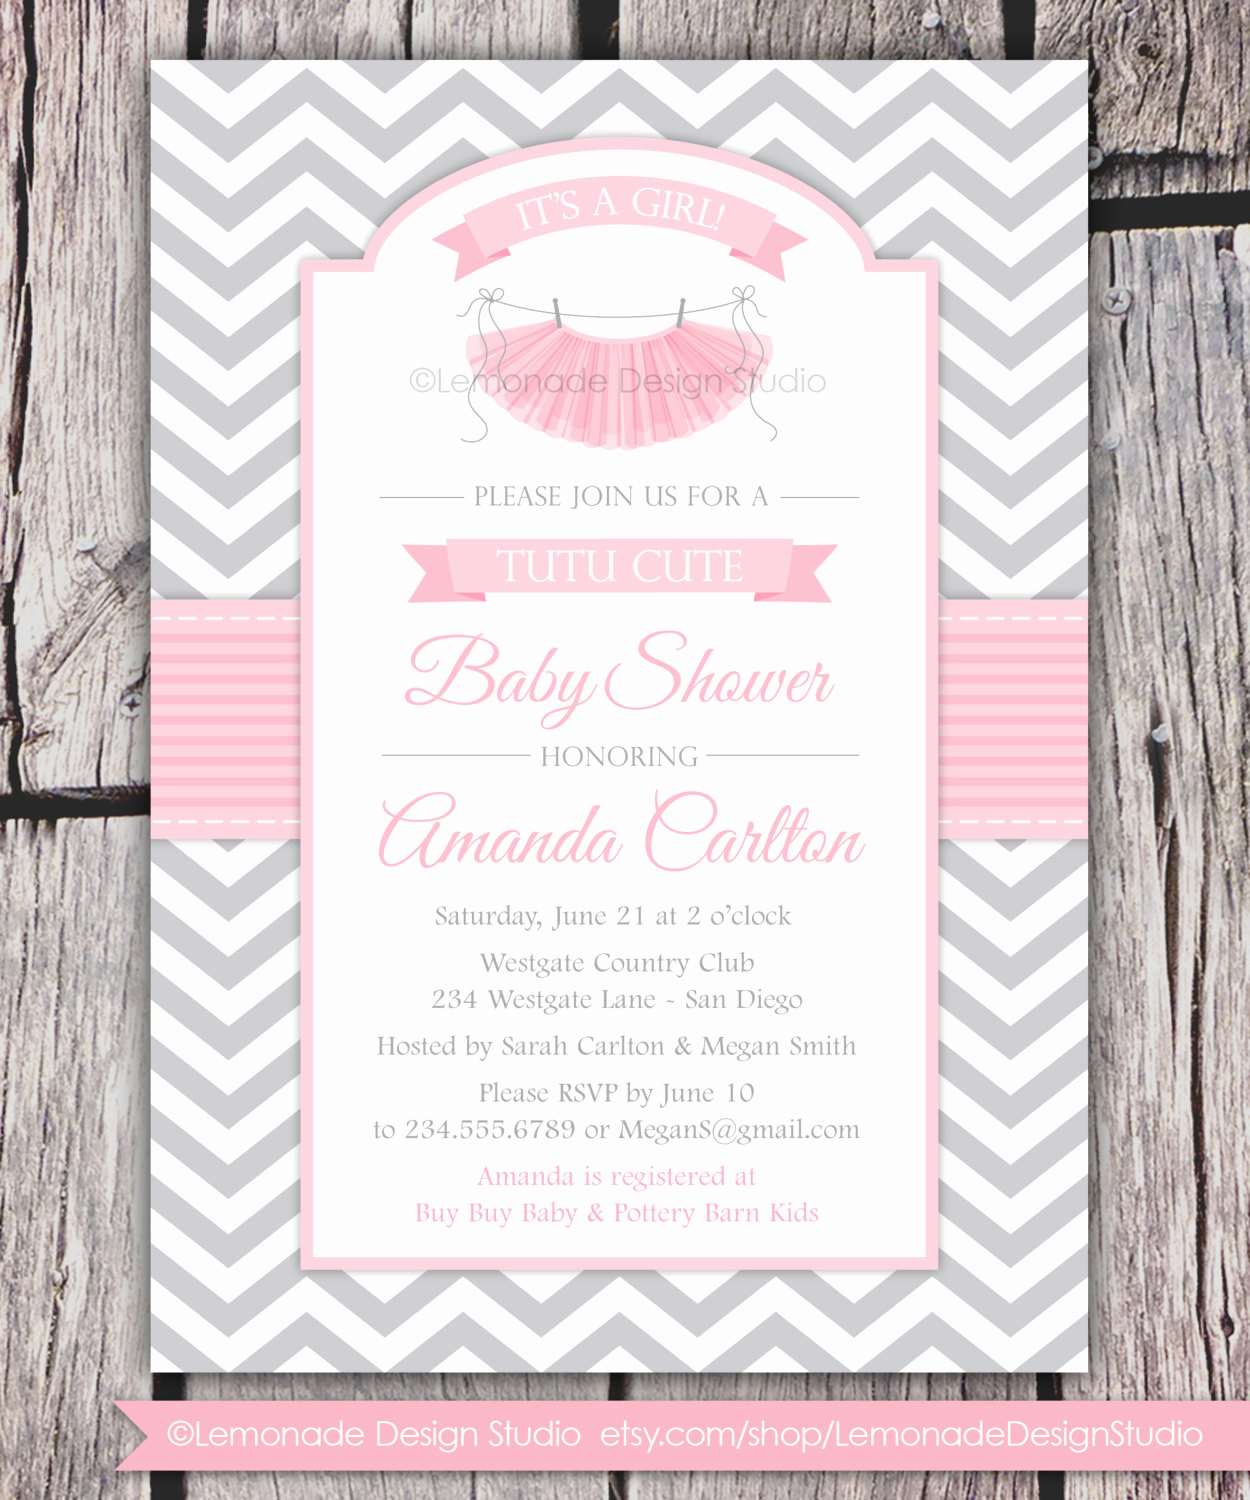 Baby Shower Invitation for Girl New Tutu Cute Baby Shower Invitation Chevron Pink Grey Girl